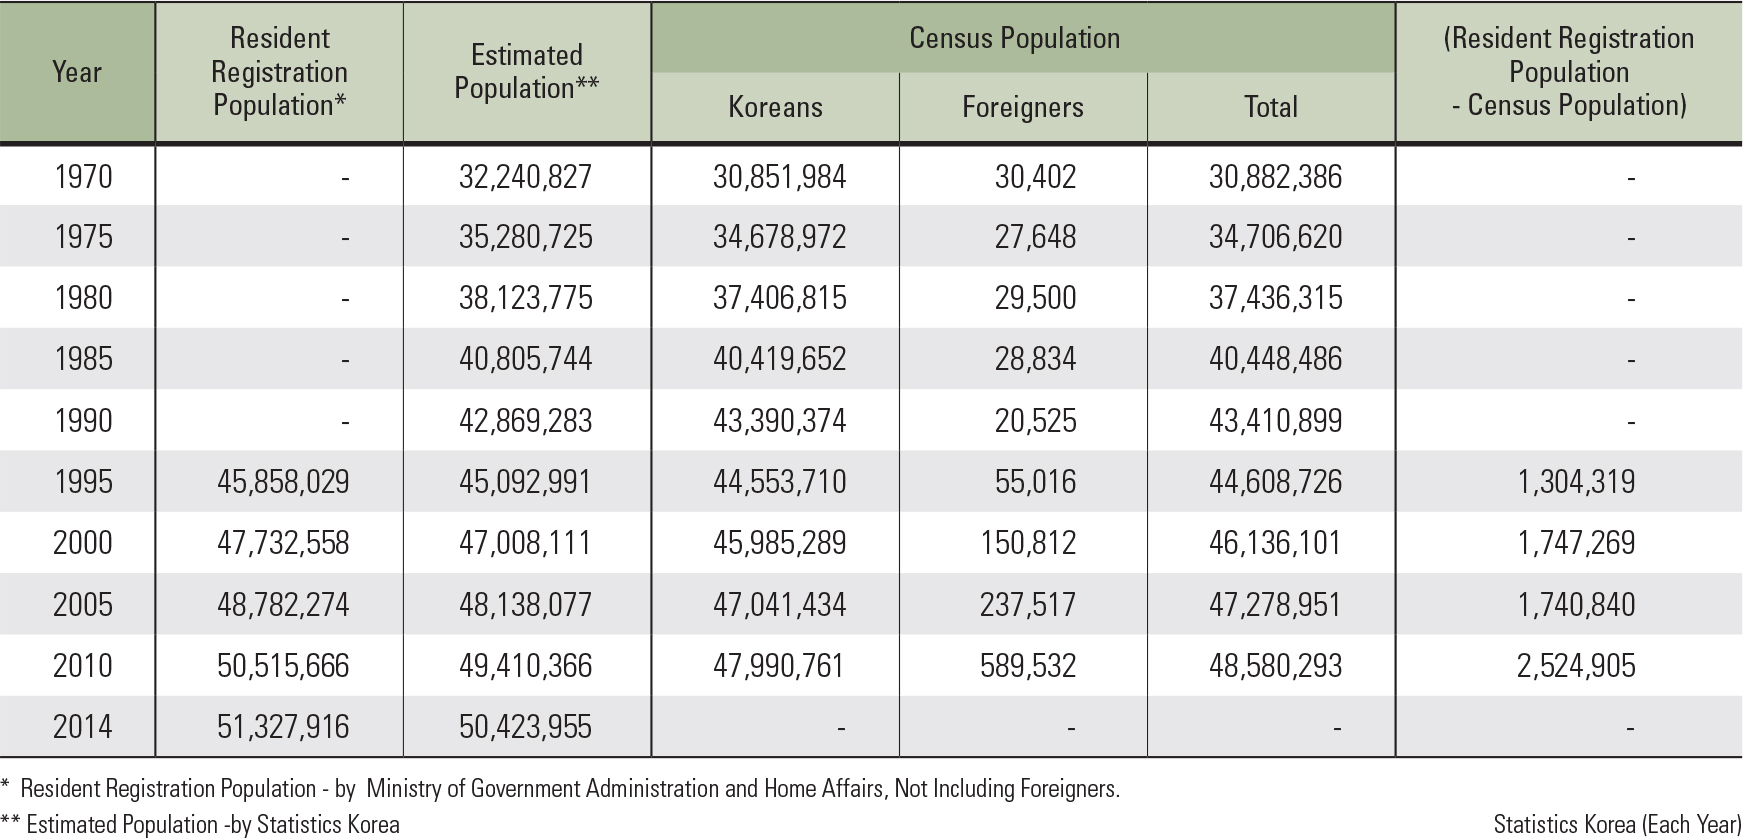 "Resident Registration Population, Estimated Population, and Census Population of Korea<p class=""oz_zoom"" zimg=""http://imagedata.cafe24.com/us_3/us3_99-2_2.jpg""><span style=""font-family:Nanum Myeongjo;""><span style=""font-size:18px;""><span class=""label label-danger"">UPDATE DATA</span></span></p>"